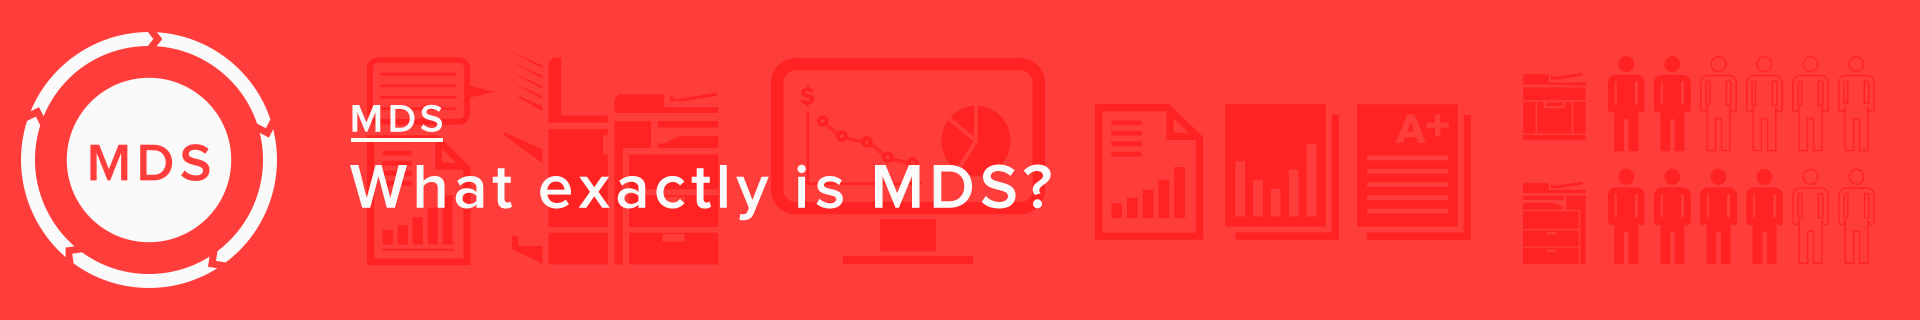 what-is-mds-banner